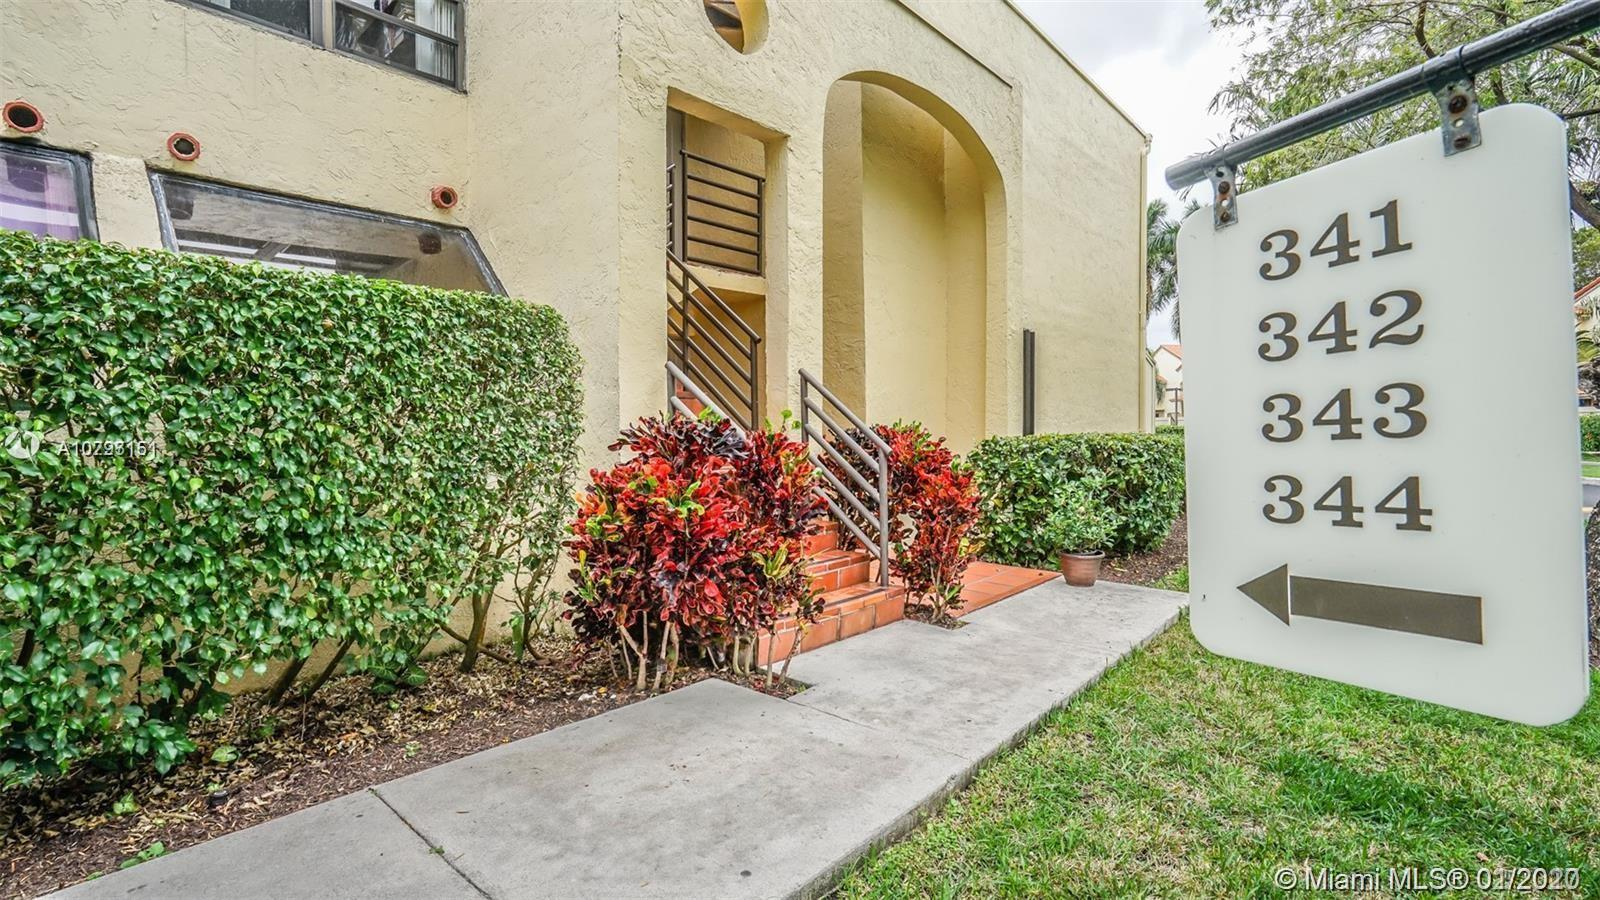 Located on Waterfront Community of Mariner Village and recently updated. Beautiful 3 bedroom, 2 bath